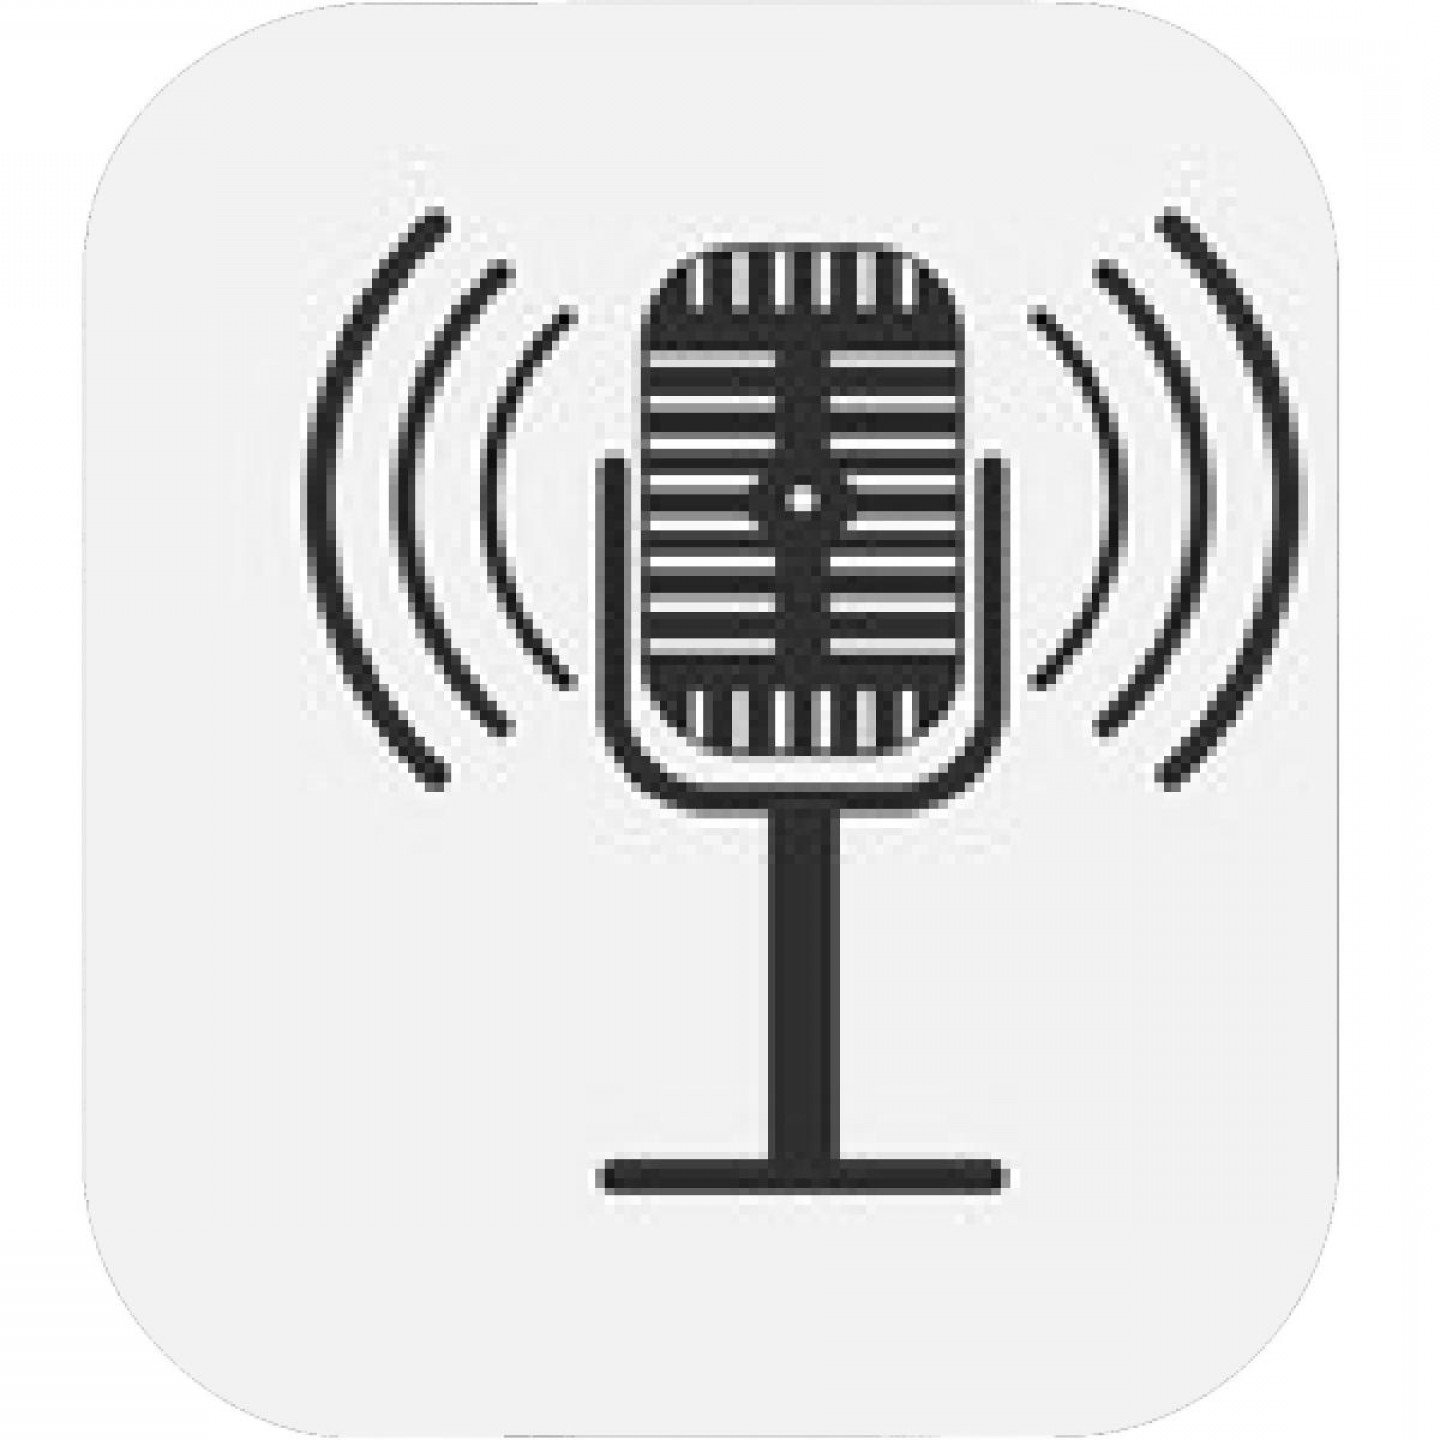 Mics Vector Designs: Microphone Isolated On White Background Vector Illustration